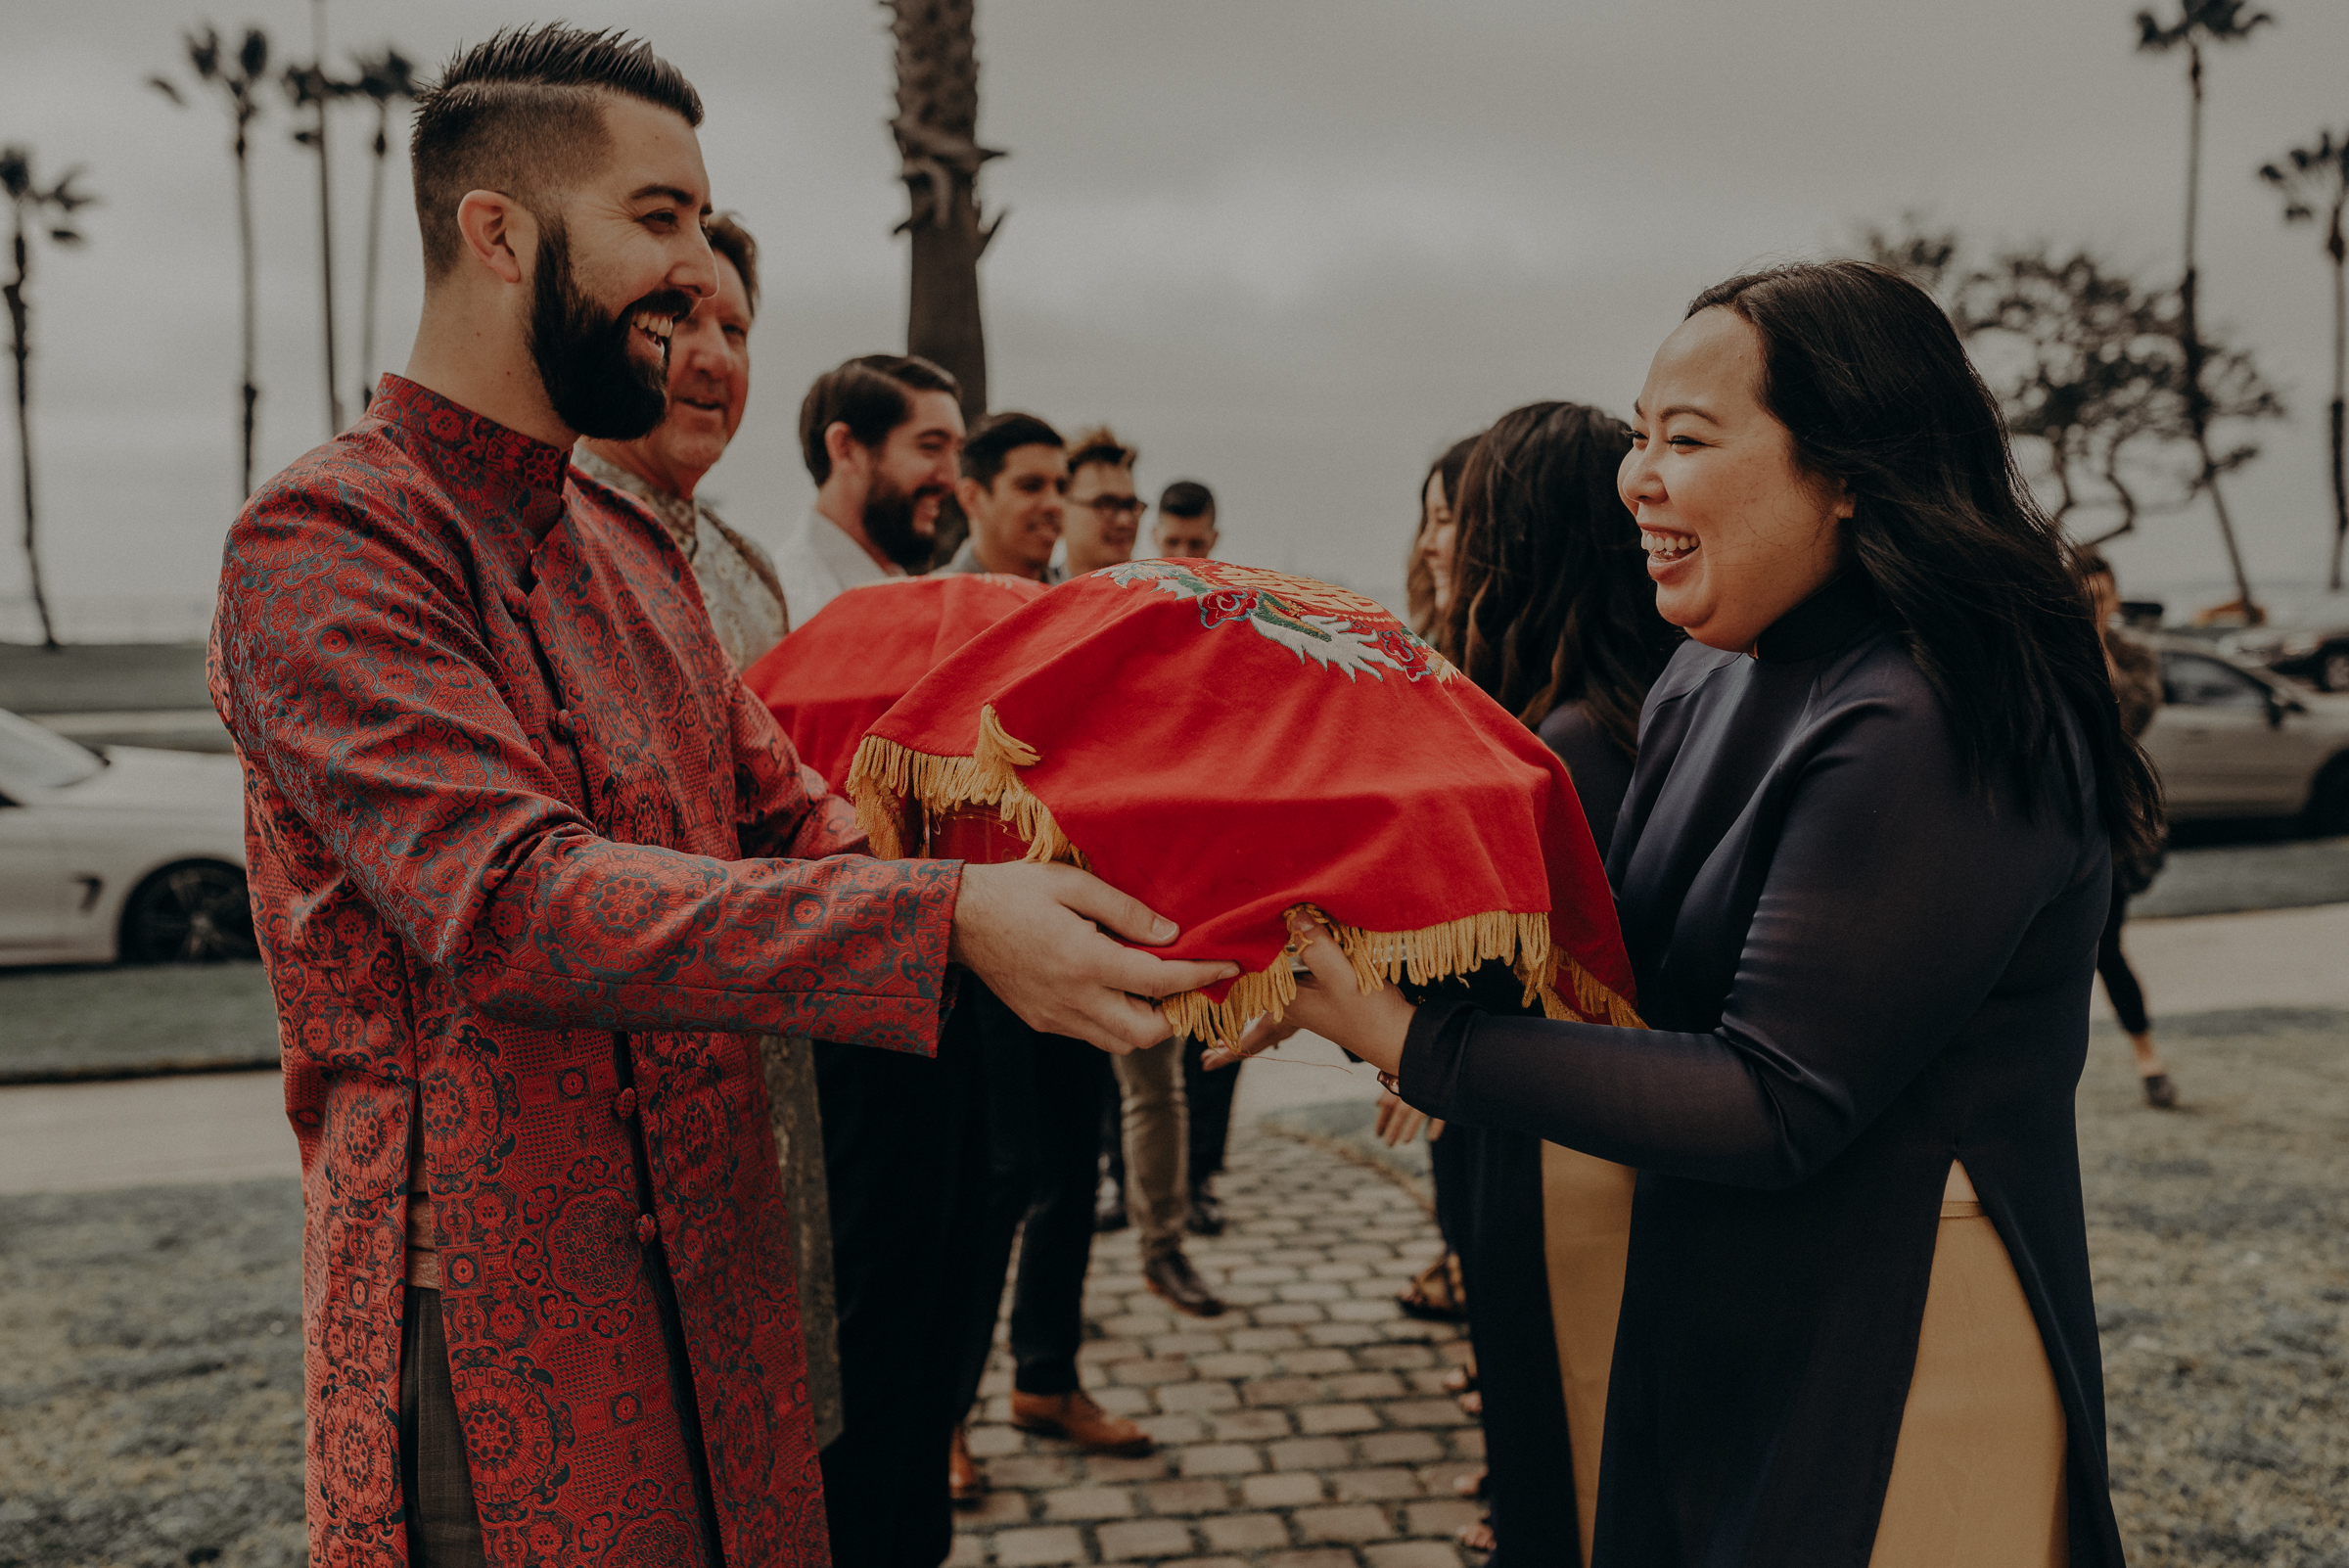 Los Angeles Wedding Photographer - IsaiahAndTaylor.com - The Ebell of Long Beach Wedding - Traditional Vietnamese tea ceremony-047.jpg